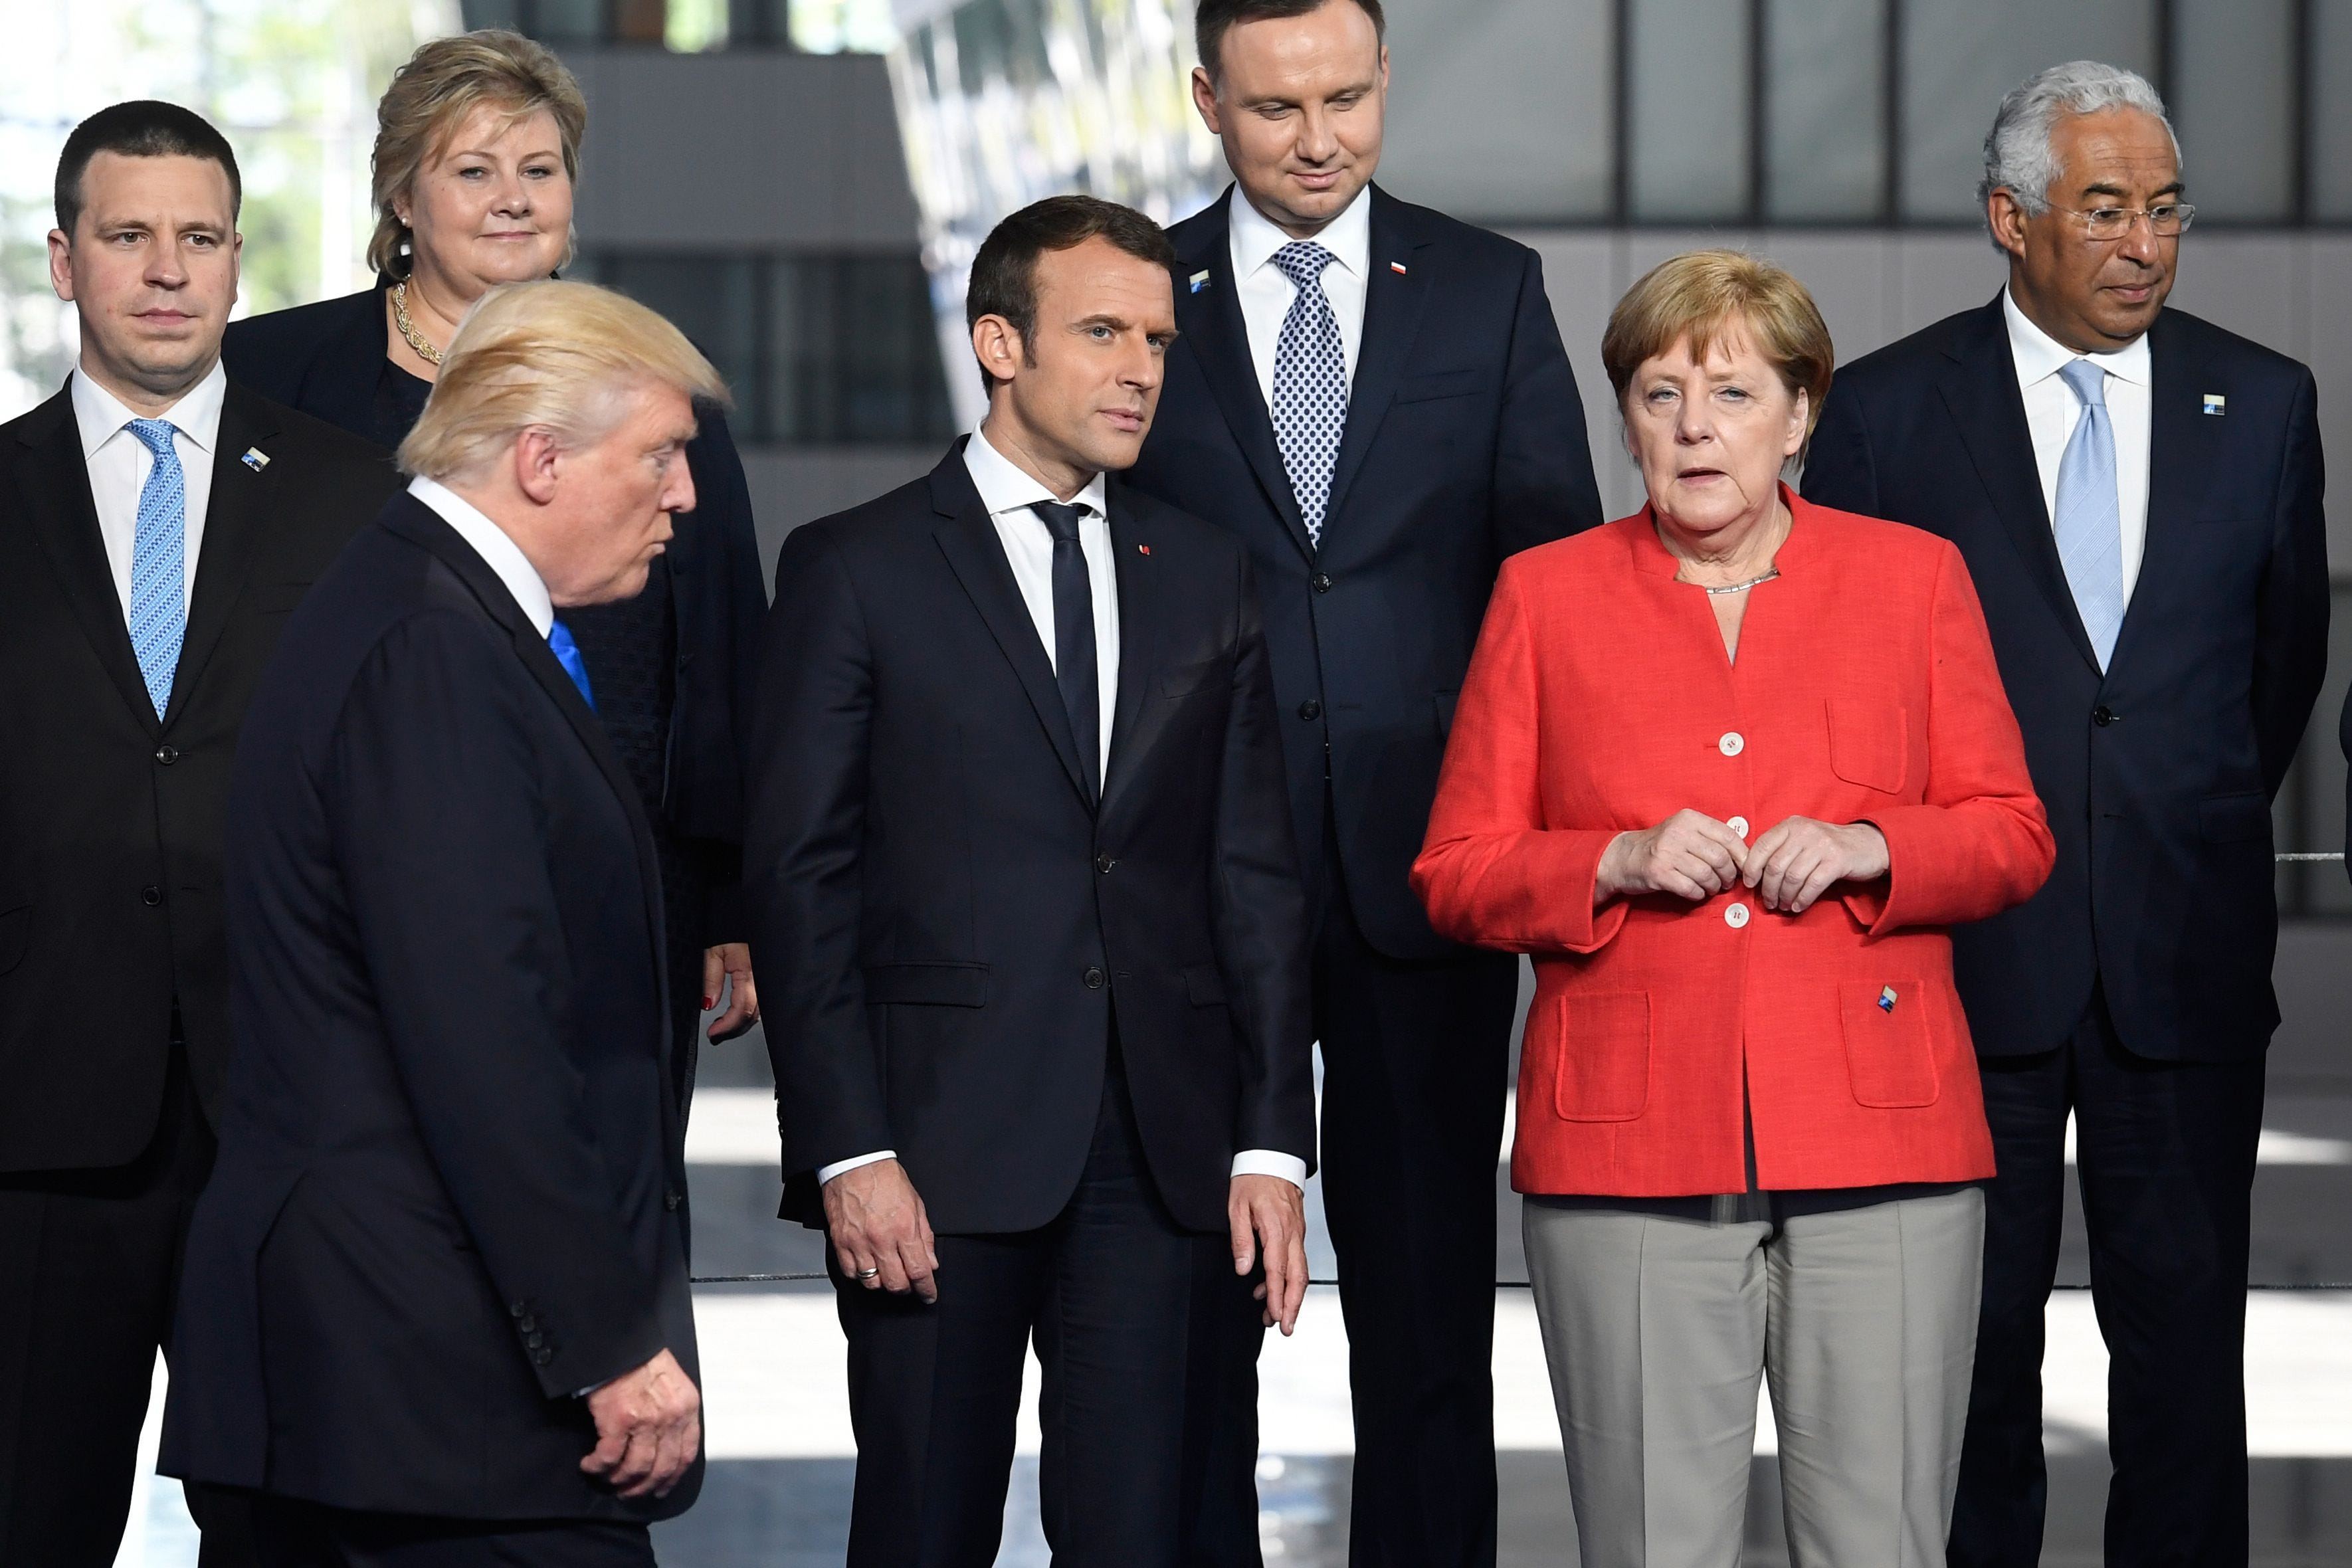 Trump's Europe trip: Where he's going on his 7-day visit with NATO allies and Putin